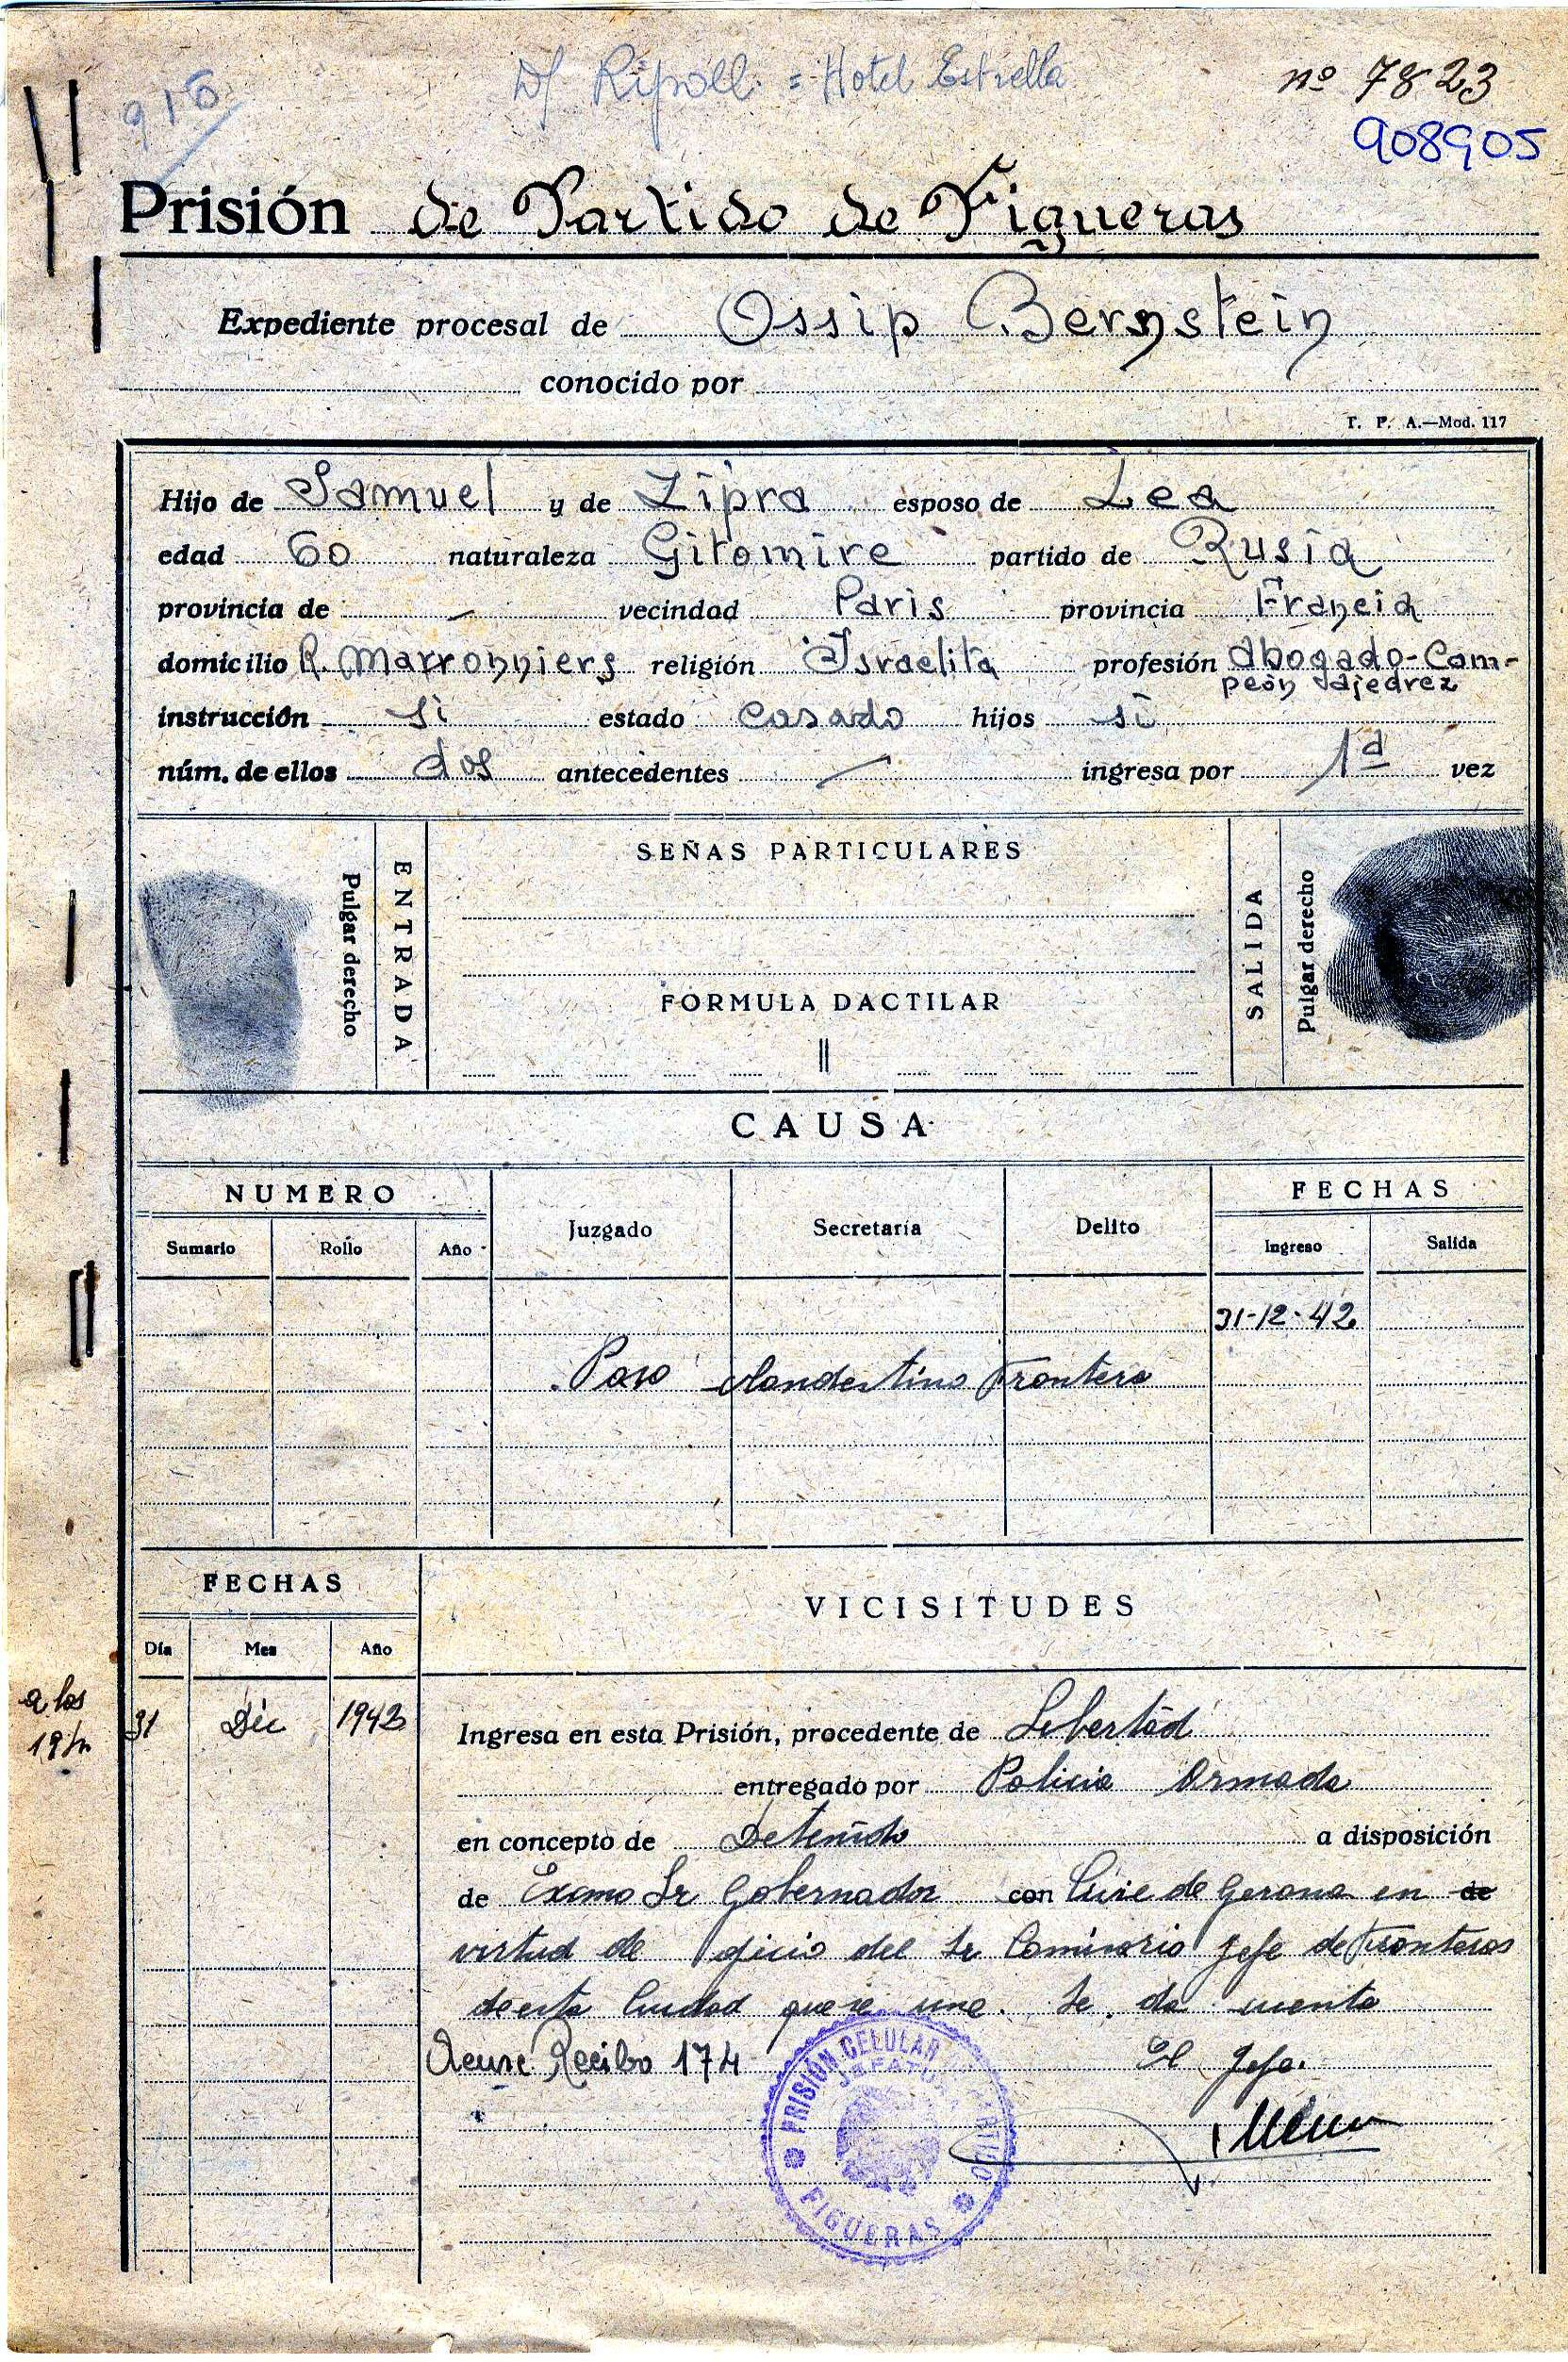 Record of Ossip Bersntein's stay in the prison of Figueres in 1942 | Arxiu Comarcal de l'Alt Empordà (ACAE).